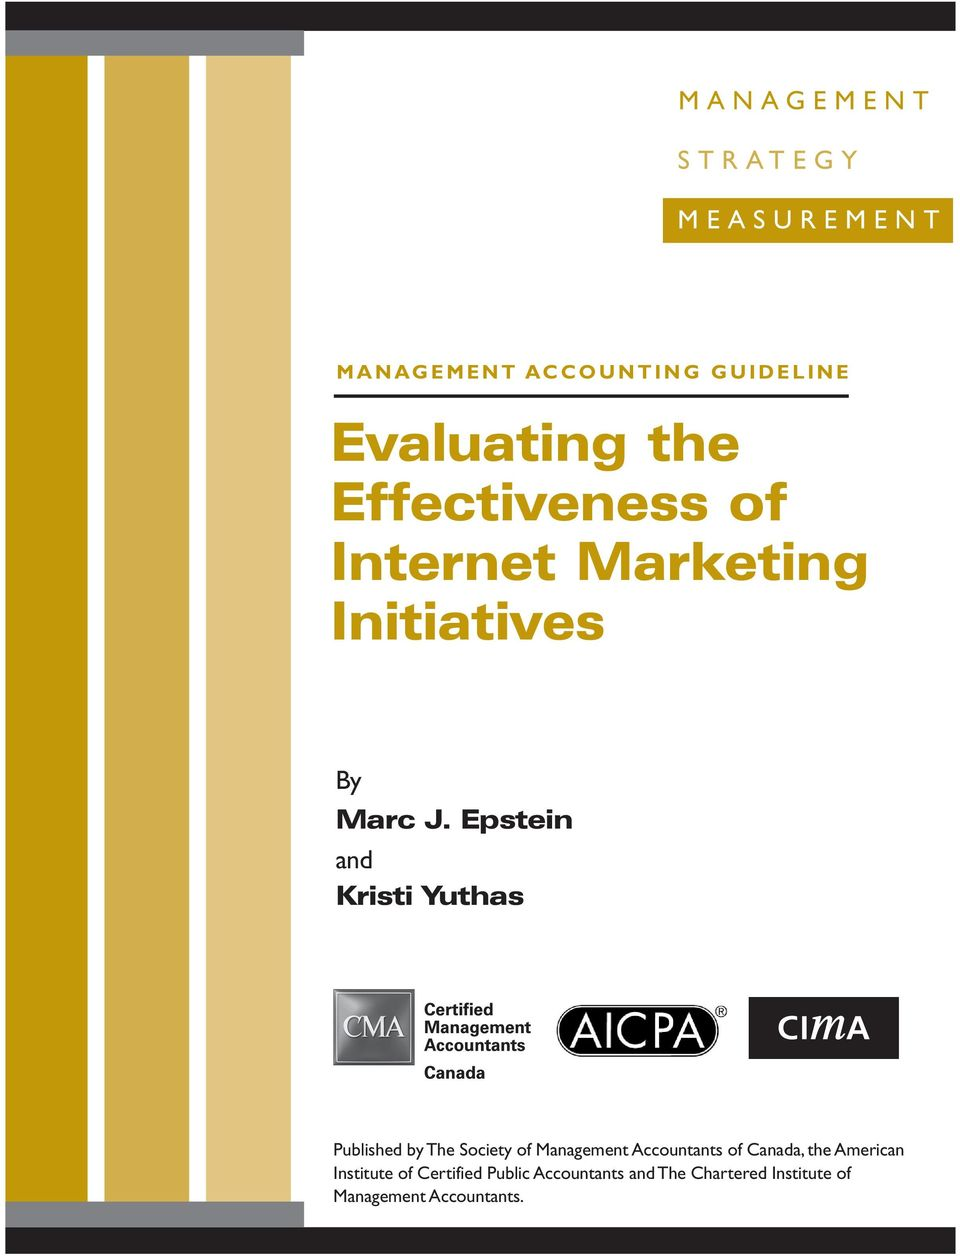 Epstein and Kristi Yuthas Published by The Society of Management Accountants of